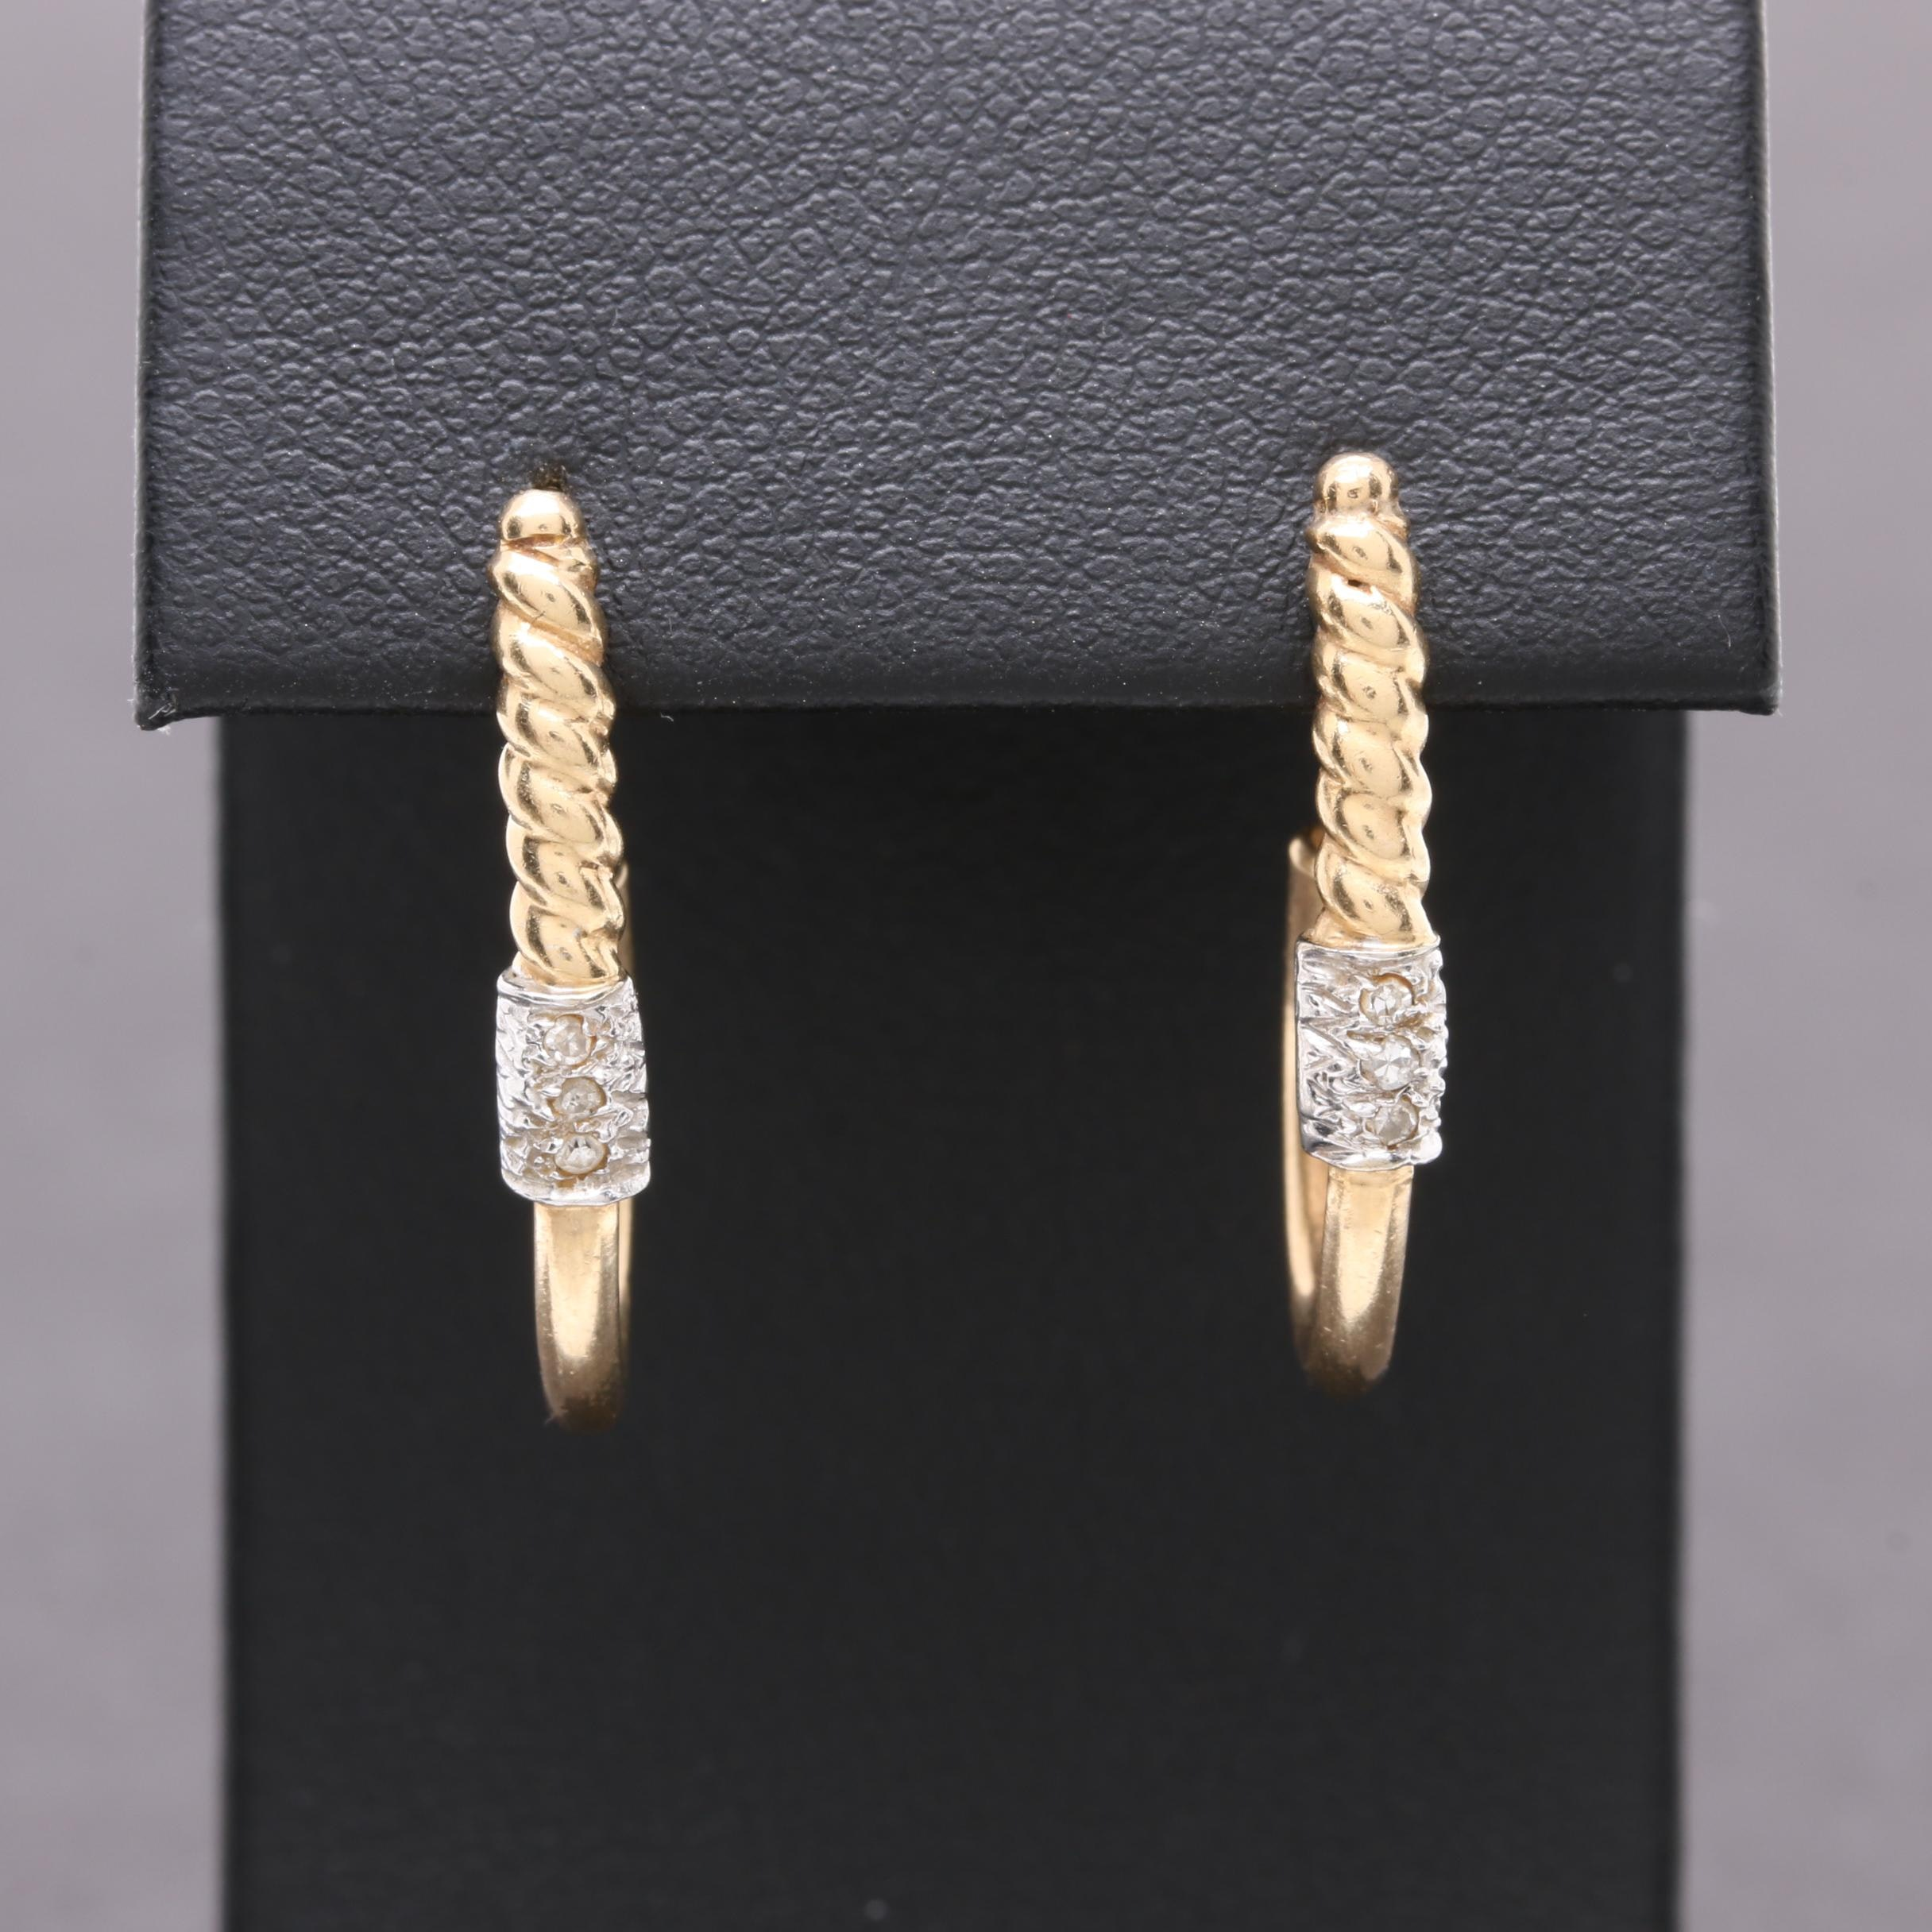 Ciani 14K Yellow Gold Diamond Earrings with 14K White Gold Accents